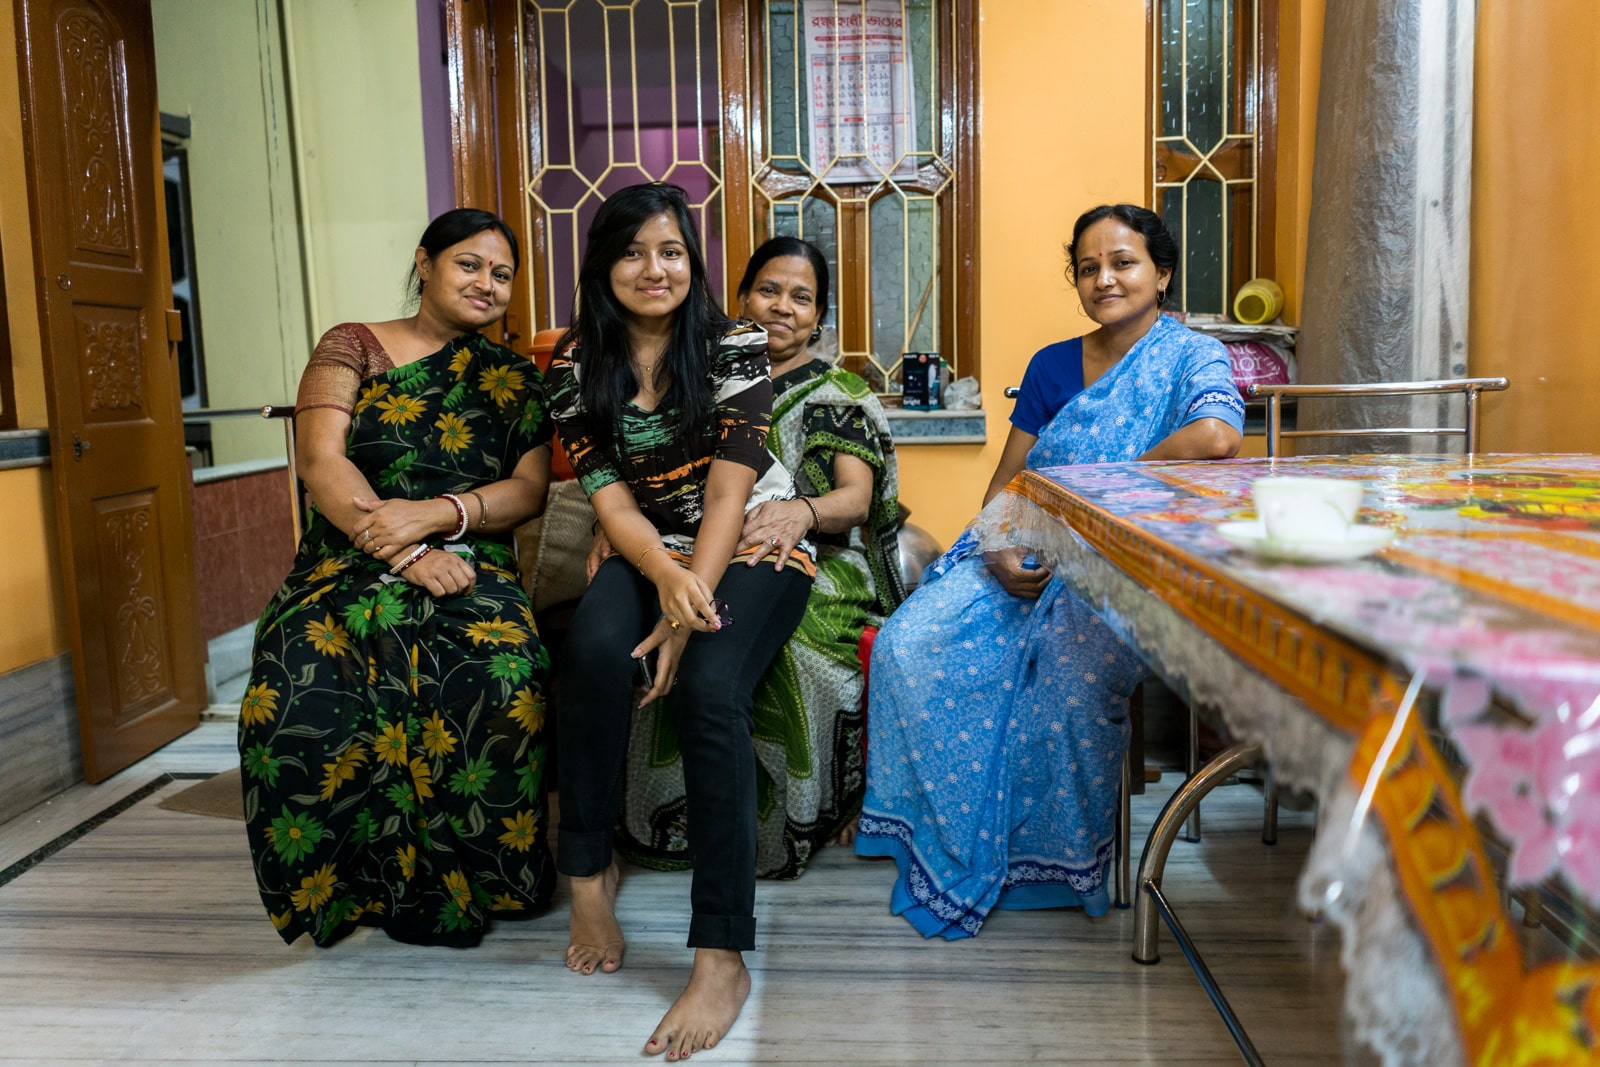 Reasons Kolkata is my favorite Indian megacity - Local family ladies - Lost With Purpose travel blog